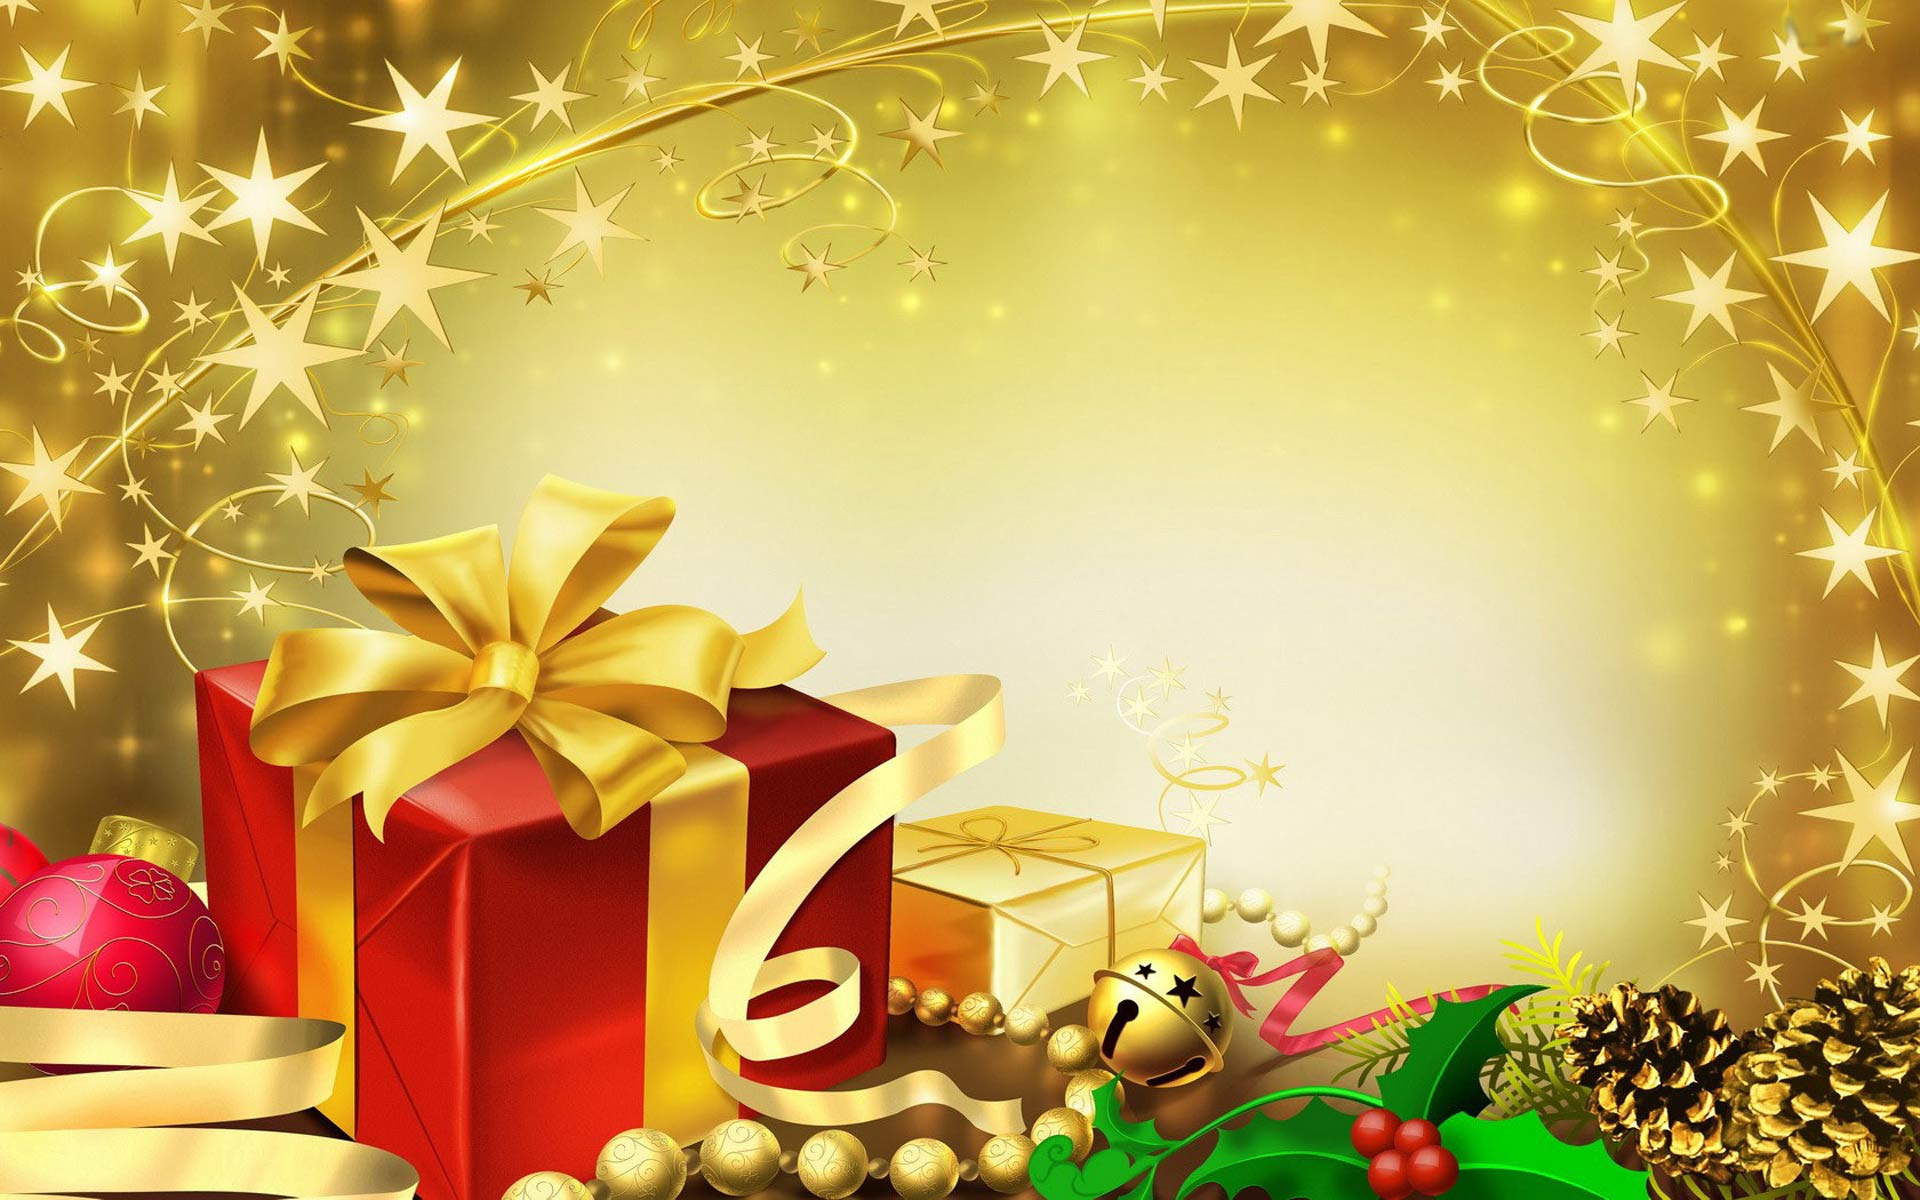 Christmas Wallpaper Widescreen 9951 Hd Wallpapers in Celebrations 1920x1200